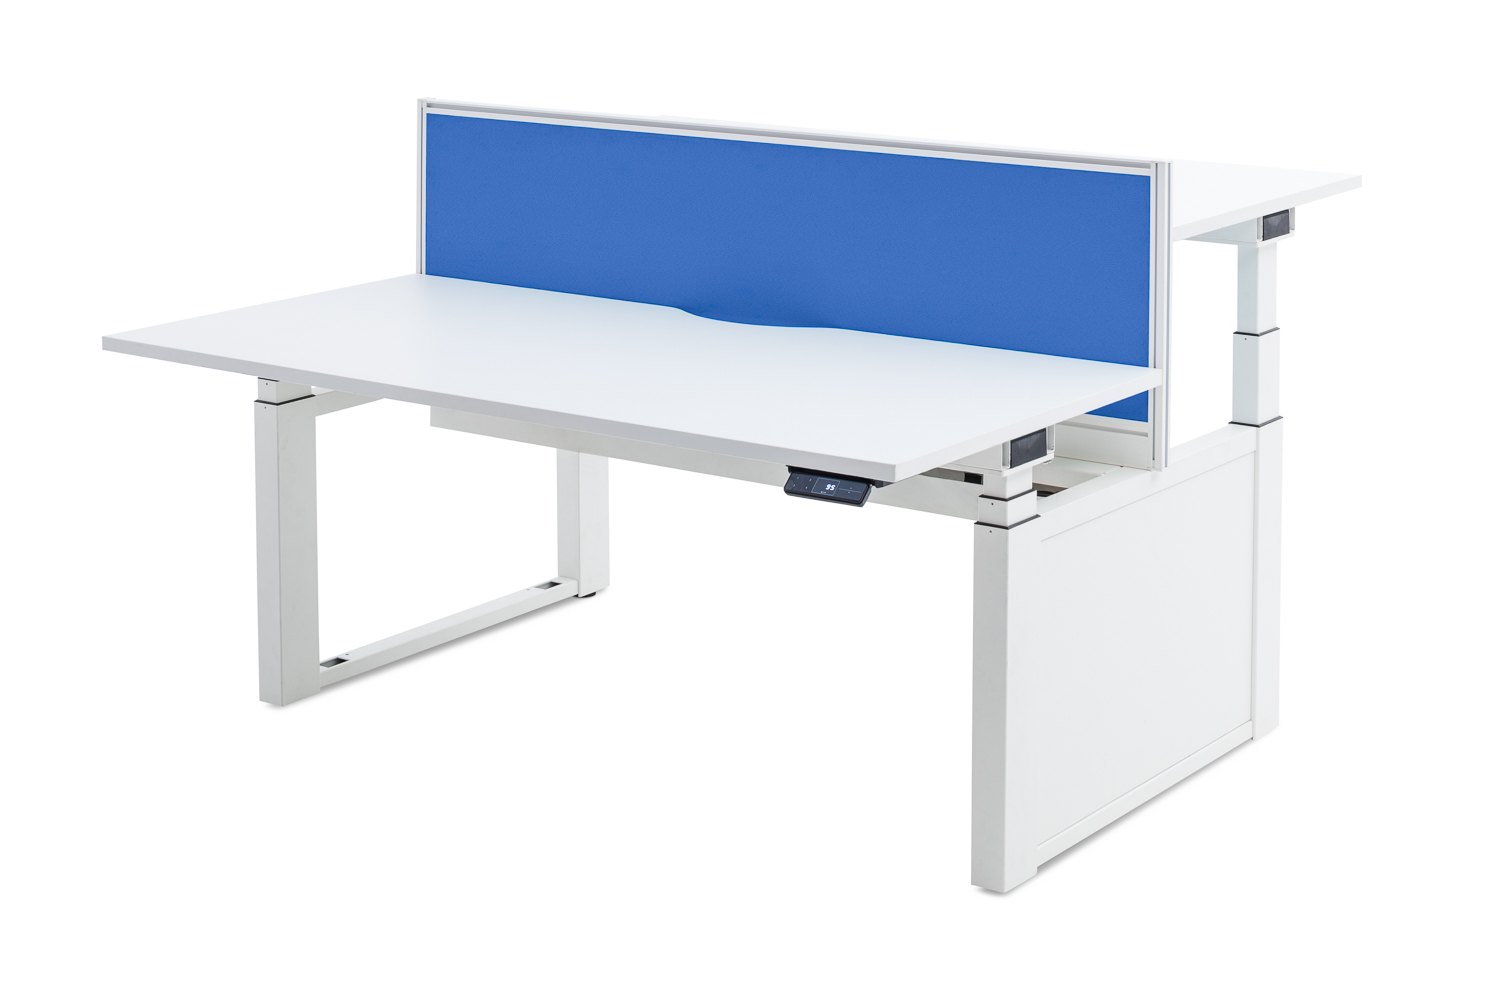 double sit stand desk with screen.jpg